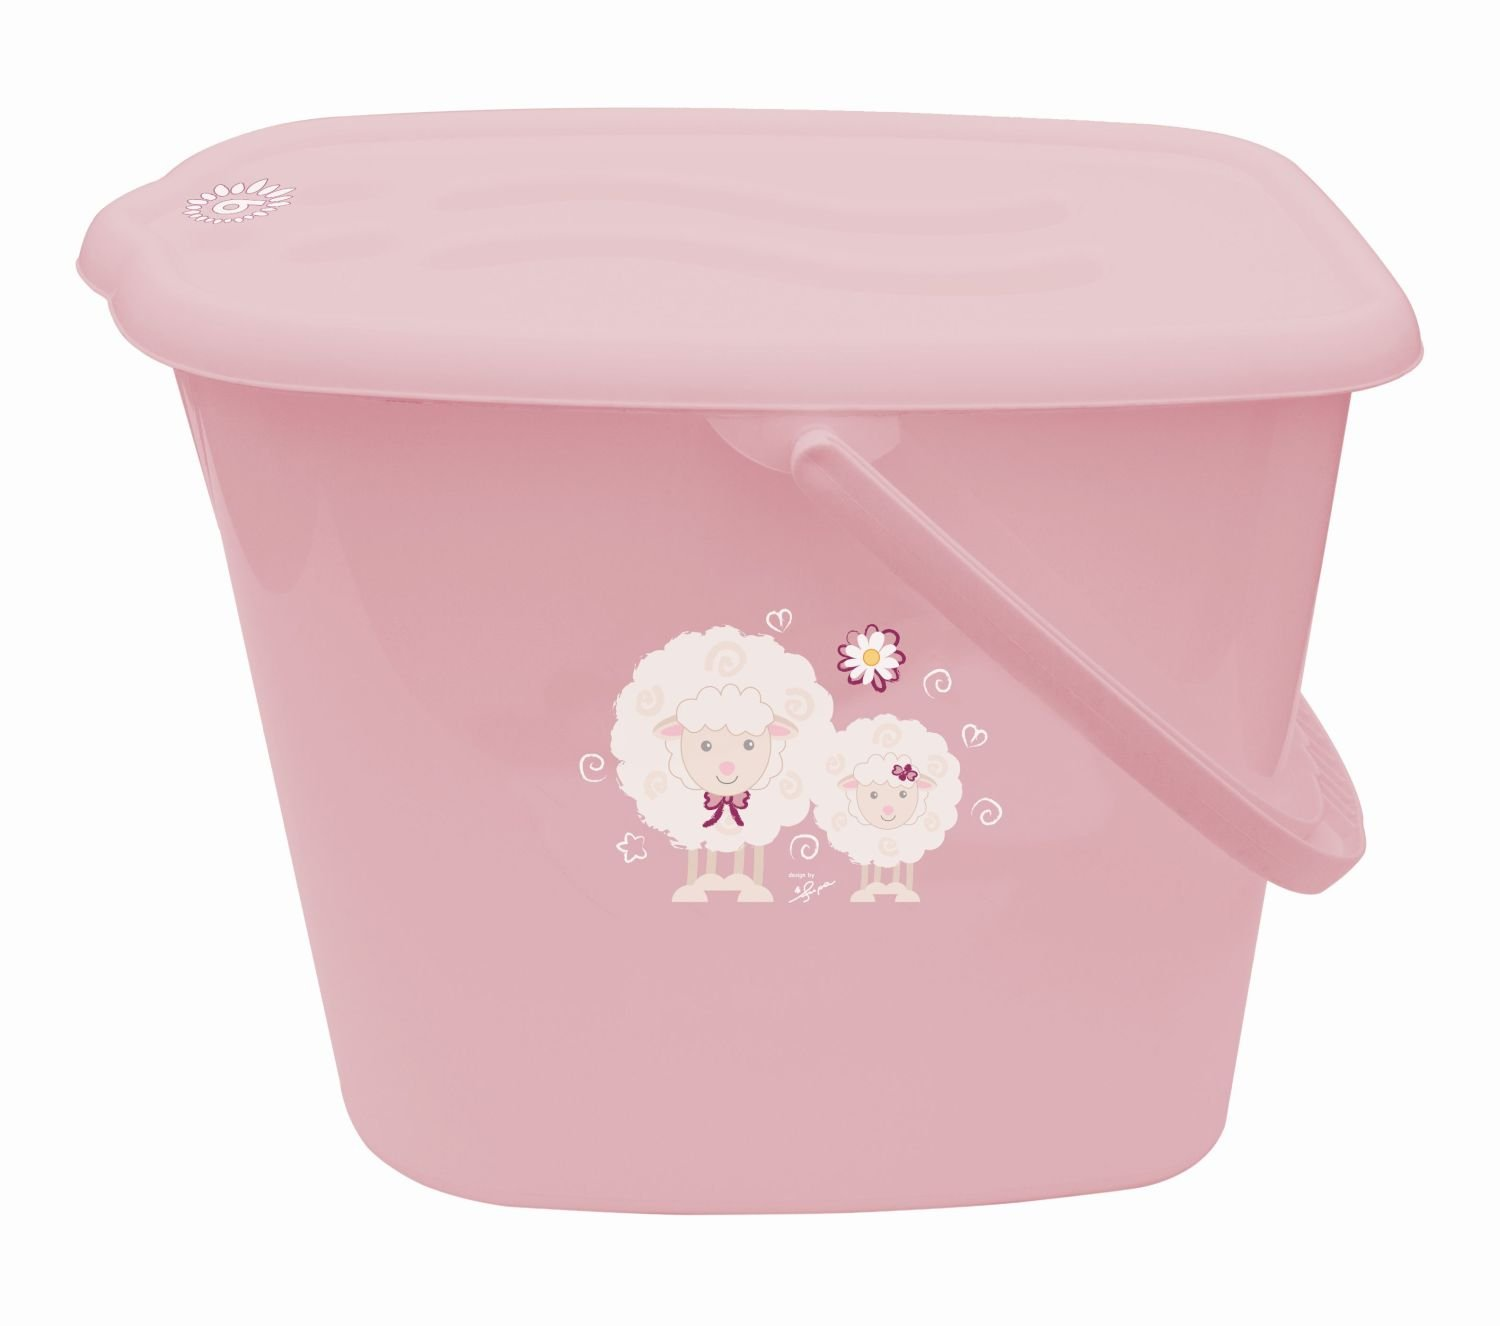 Bieco 11181704 Nappy Bin with Lid and Handle, Pink Supa GmbH